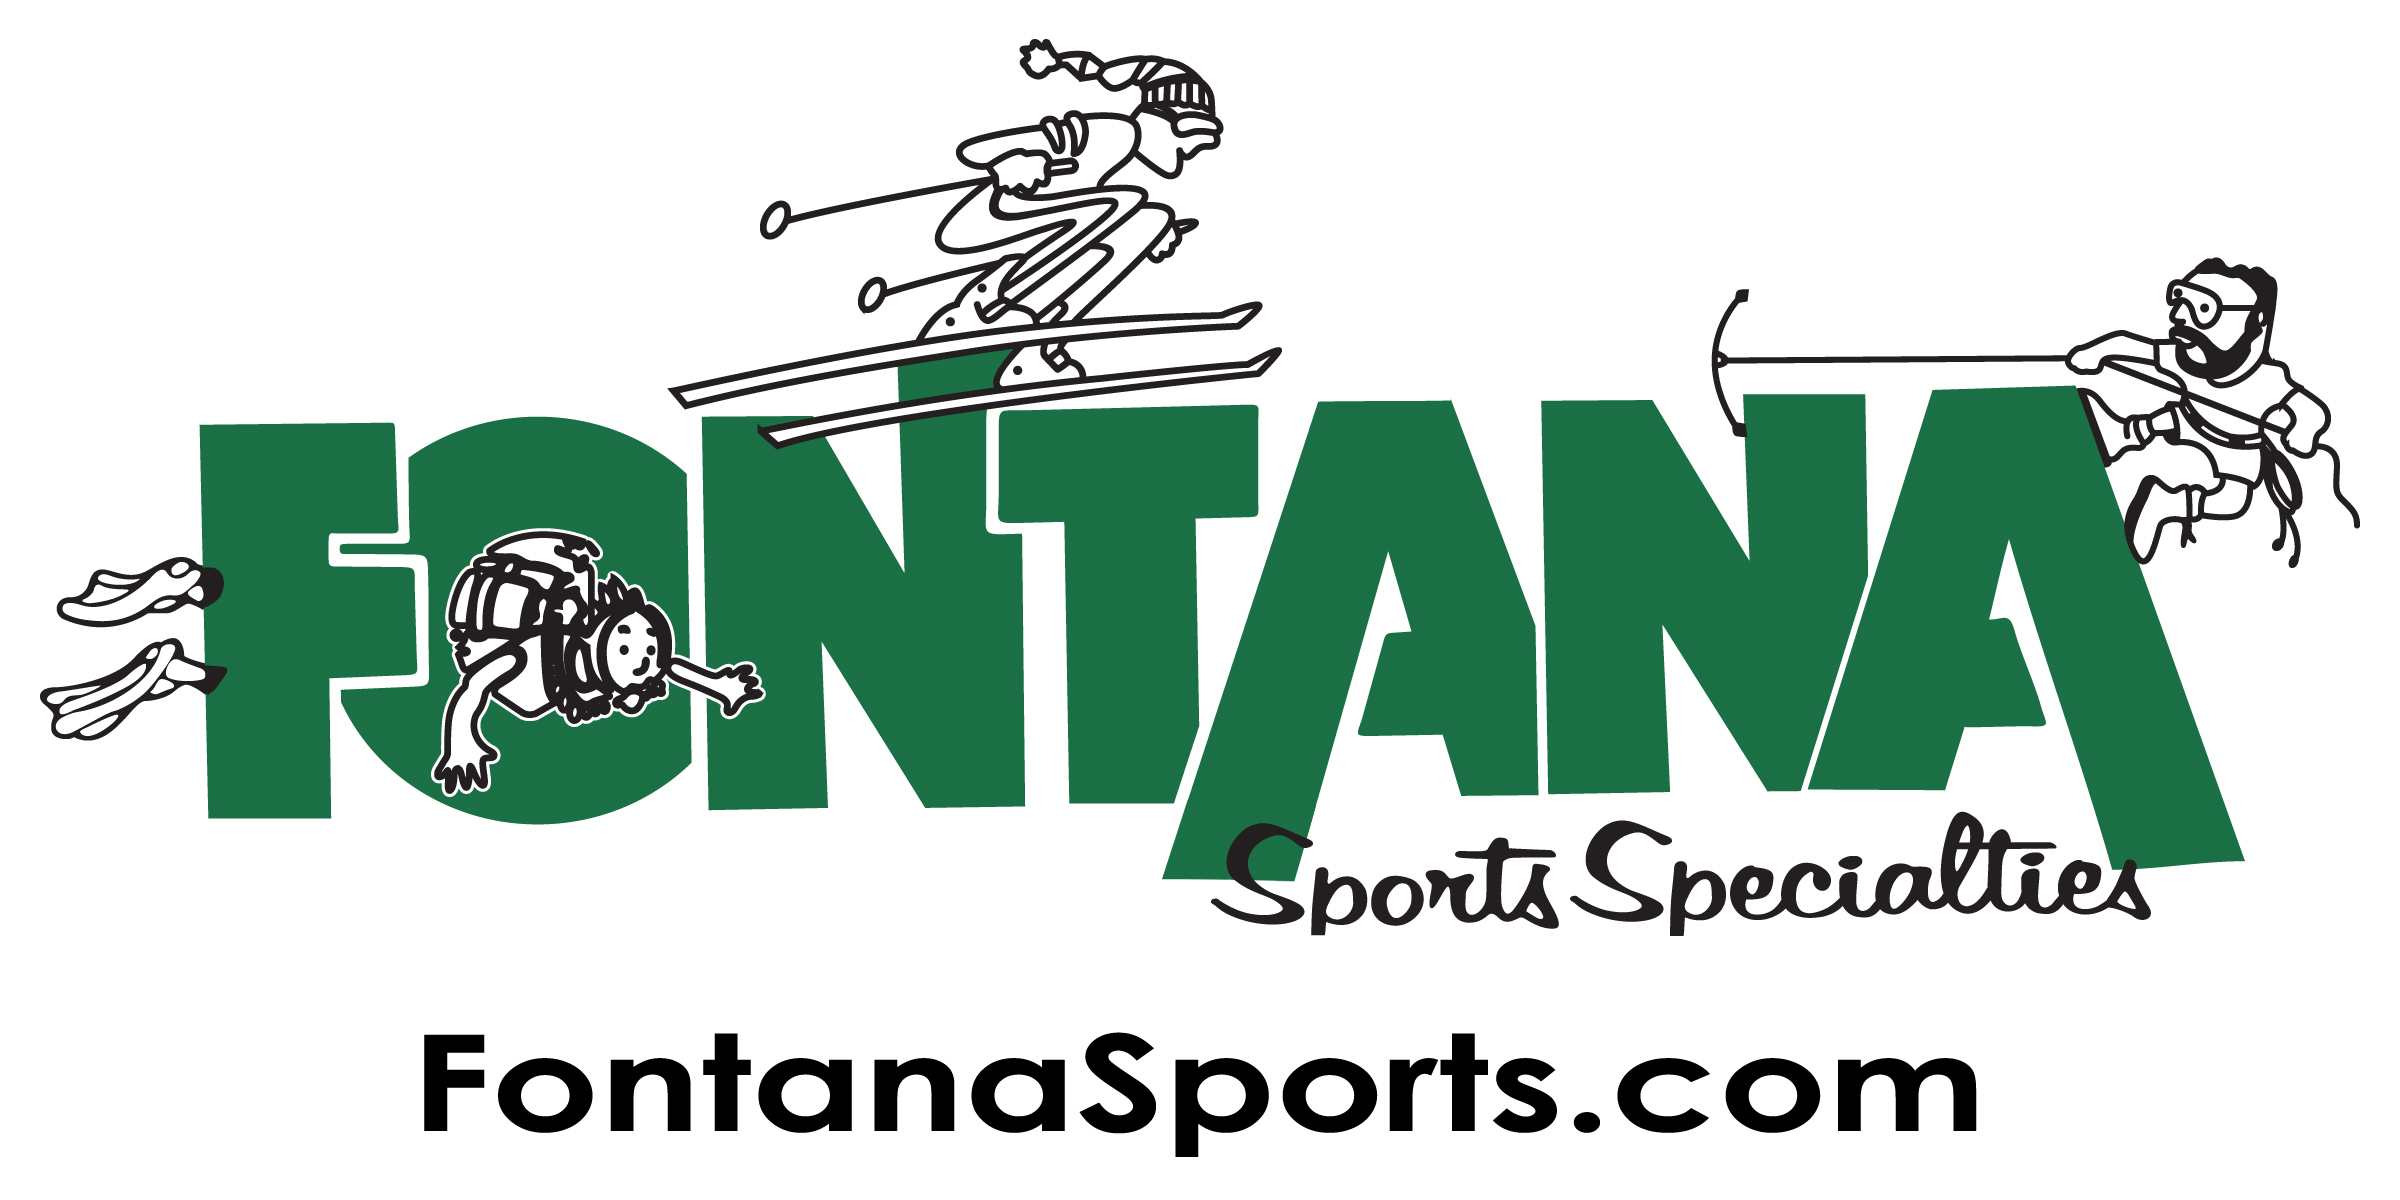 FAV High Res Fontana Logo in Green